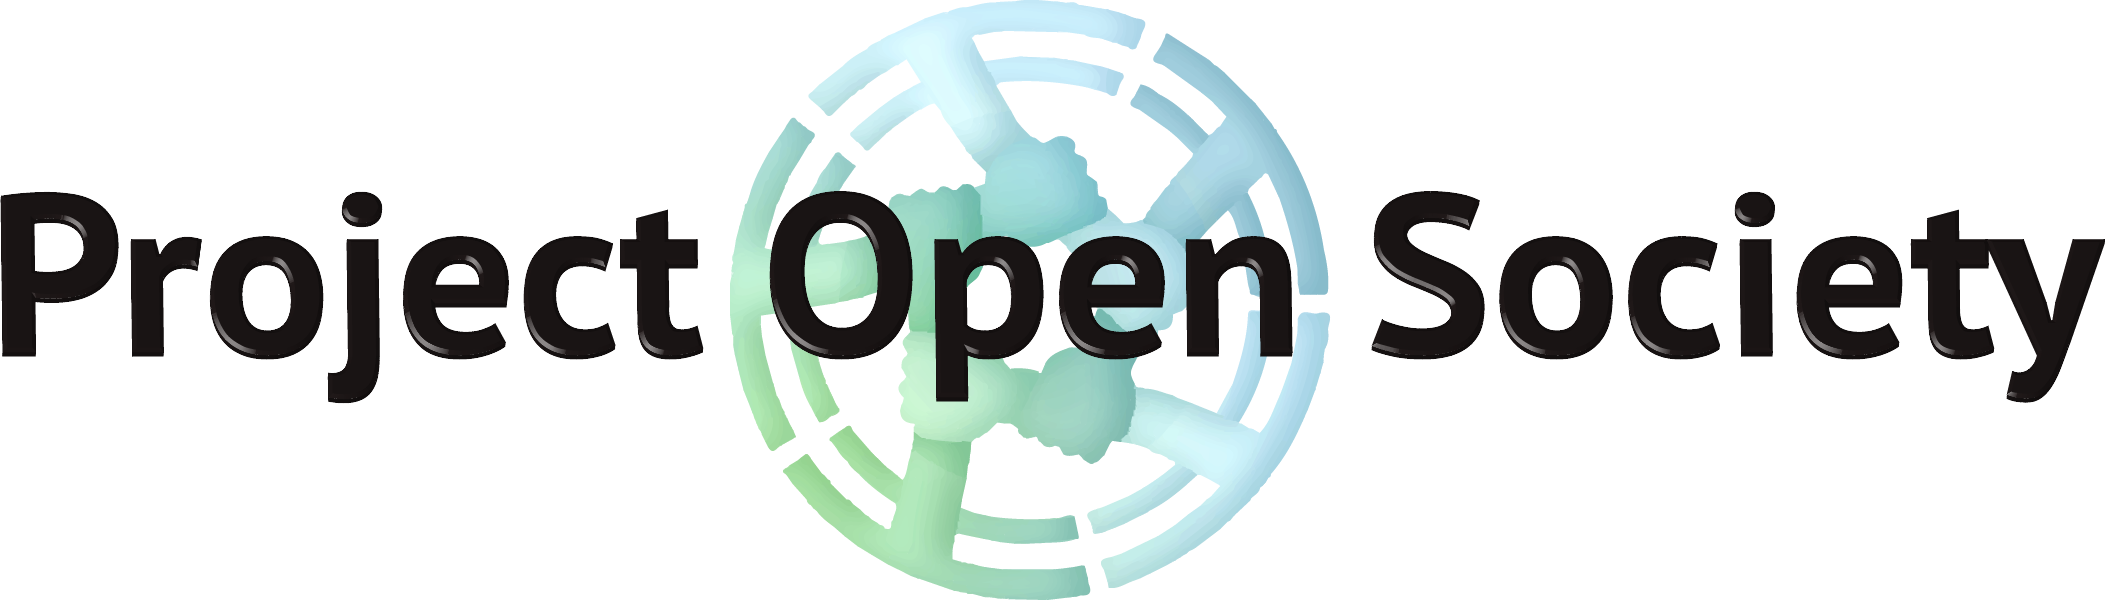 Project Open Society